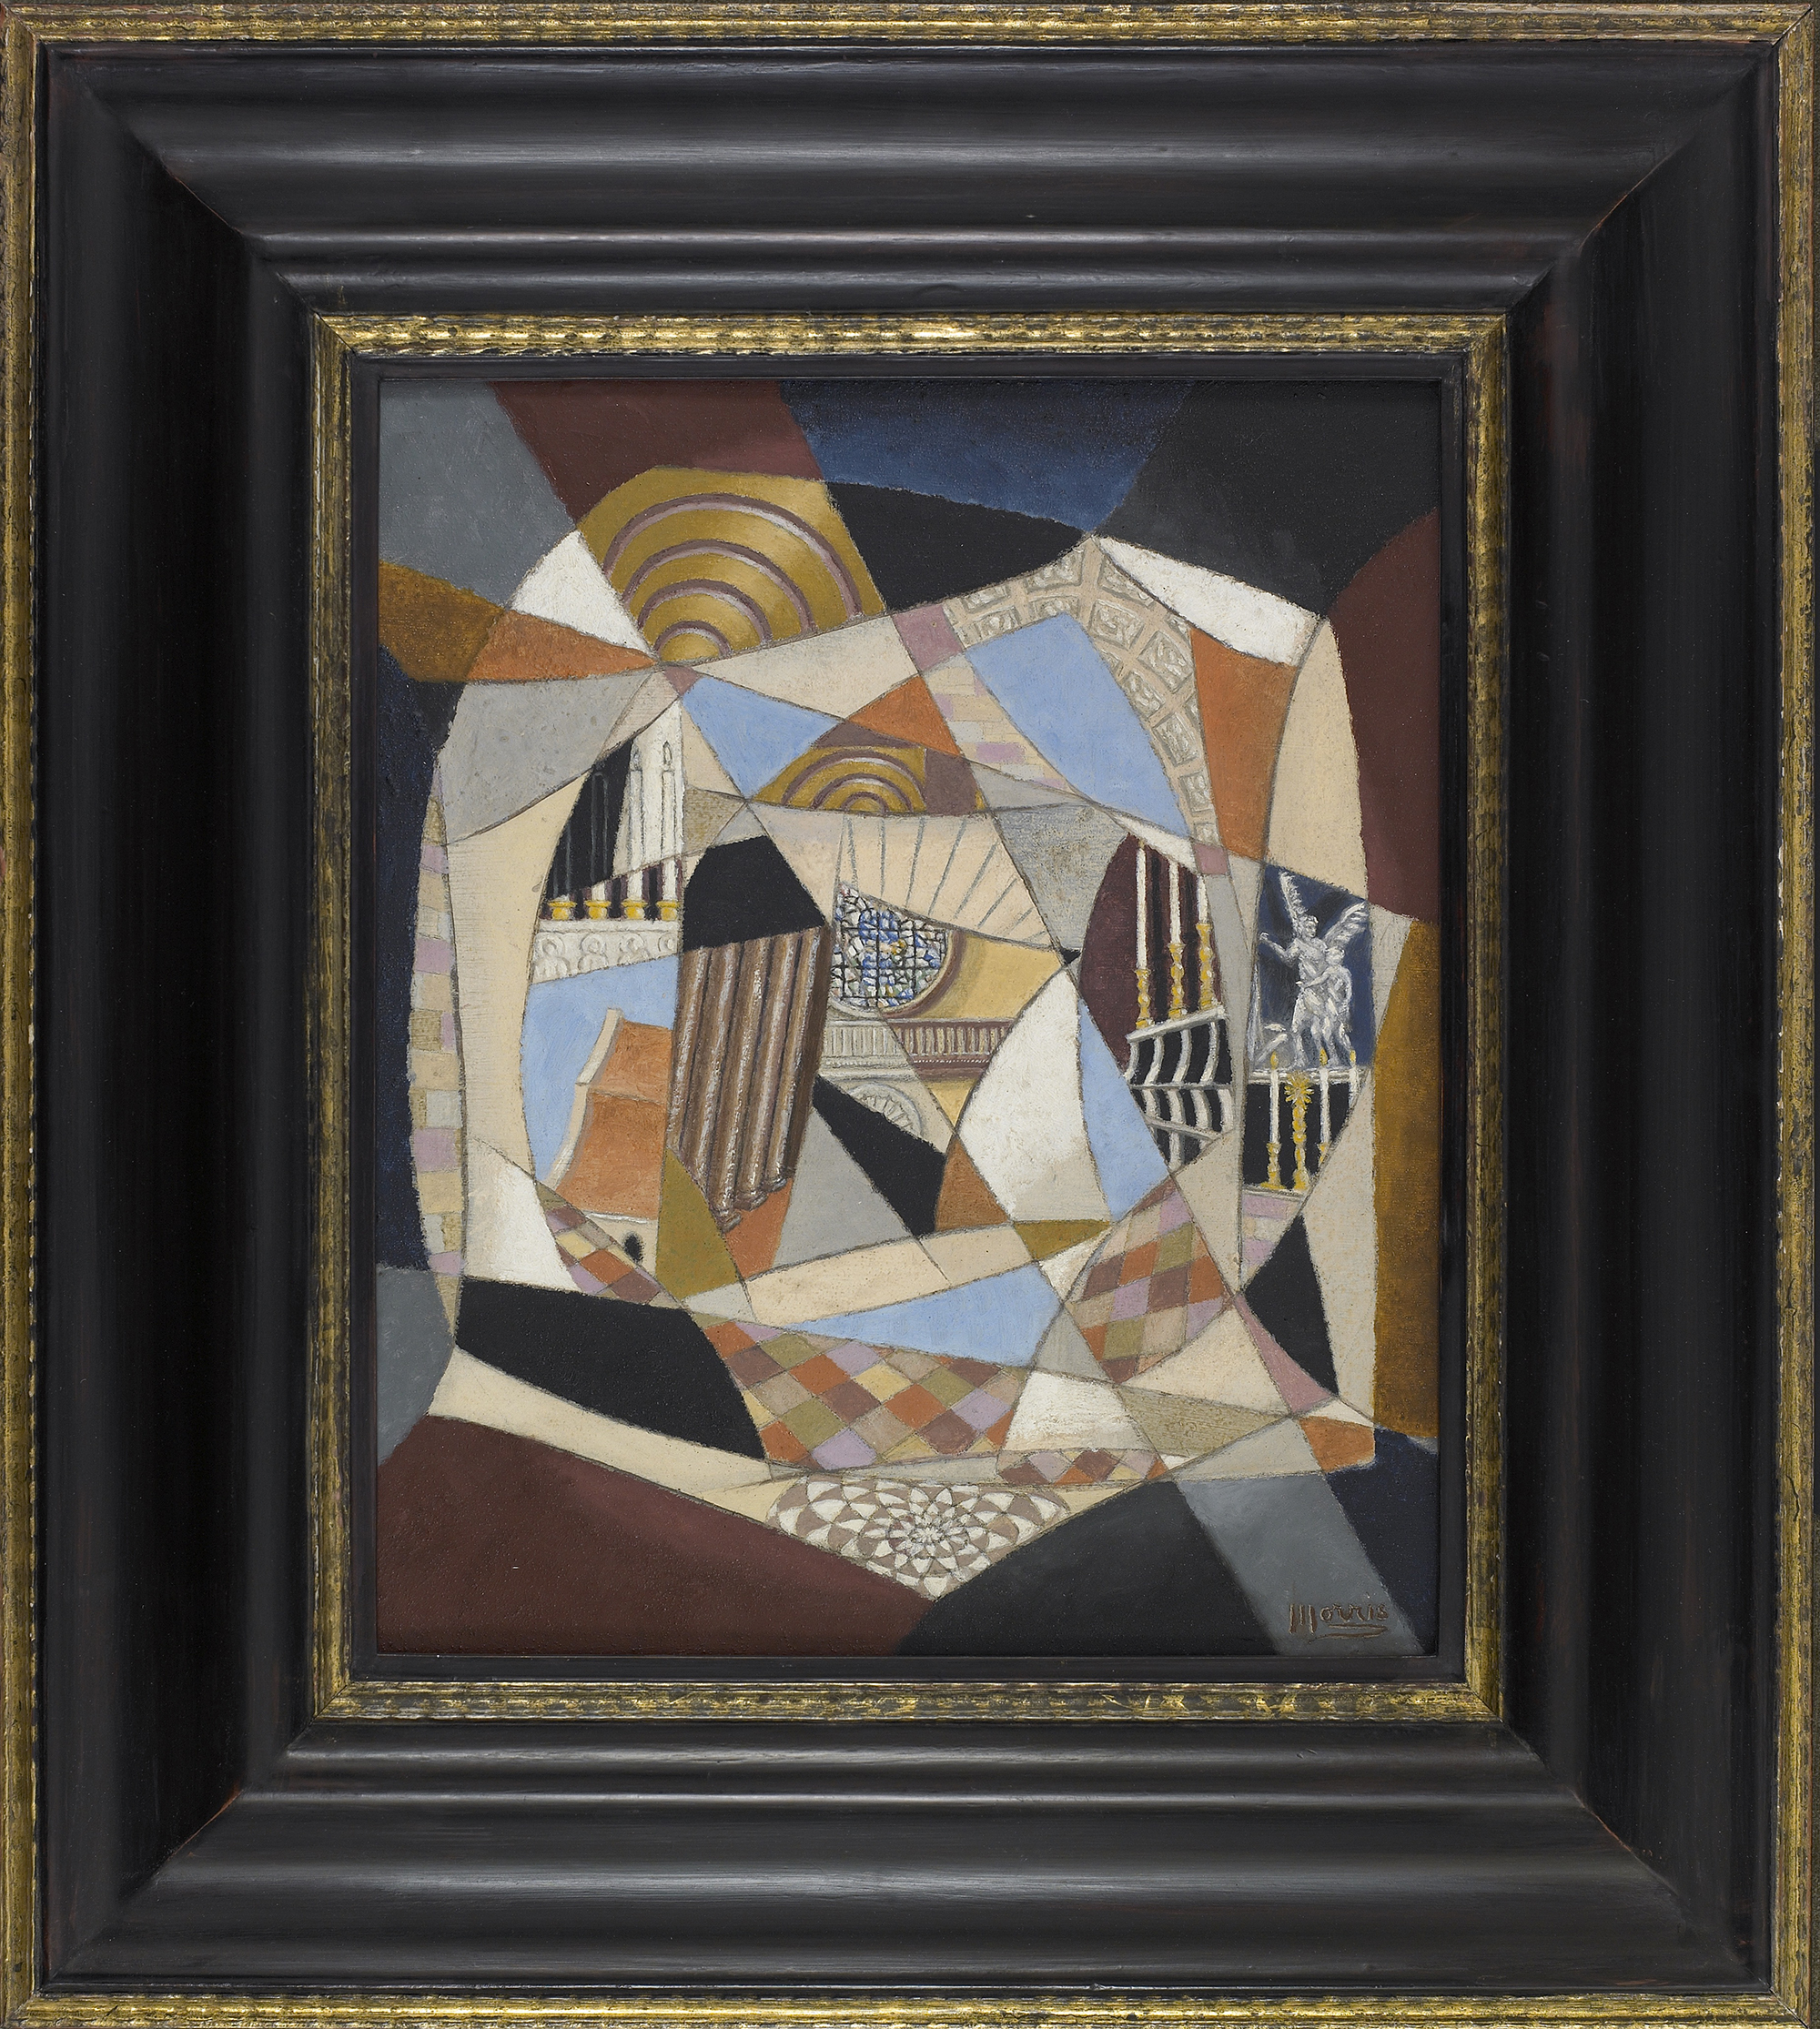 SOLD  Santo Spirito,   Oil on canvas, 1951, 13 1/2 x 11 1/2 inches